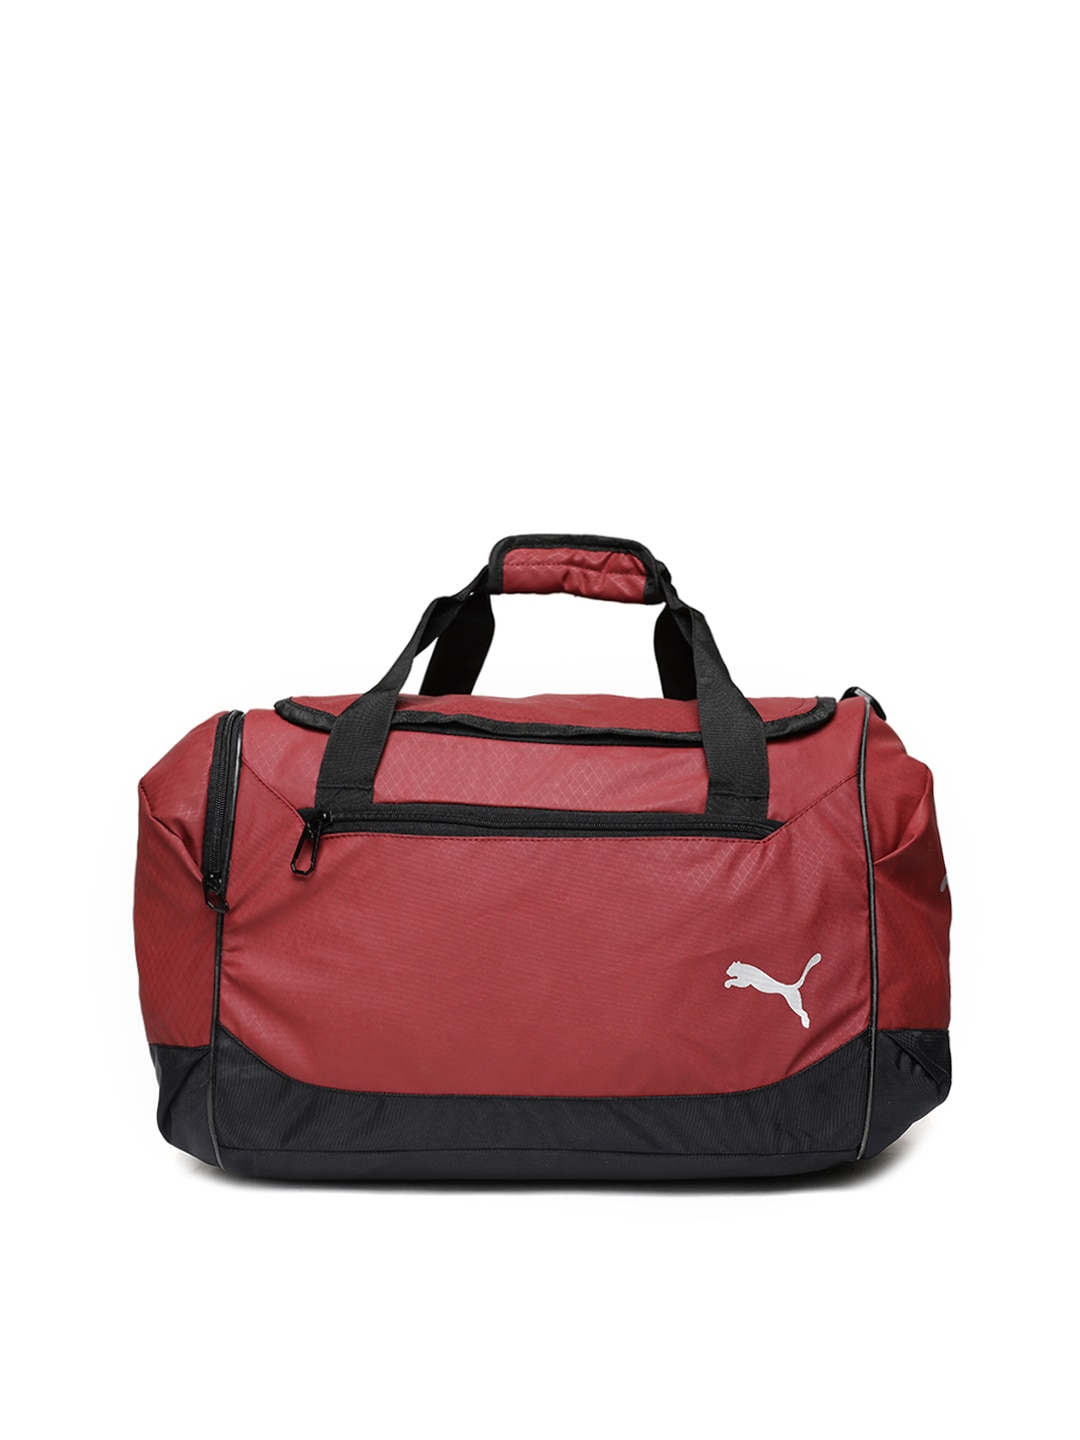 a2091ee1fbff Gym Bags For Men - Buy Mens Gym Bag Online in India